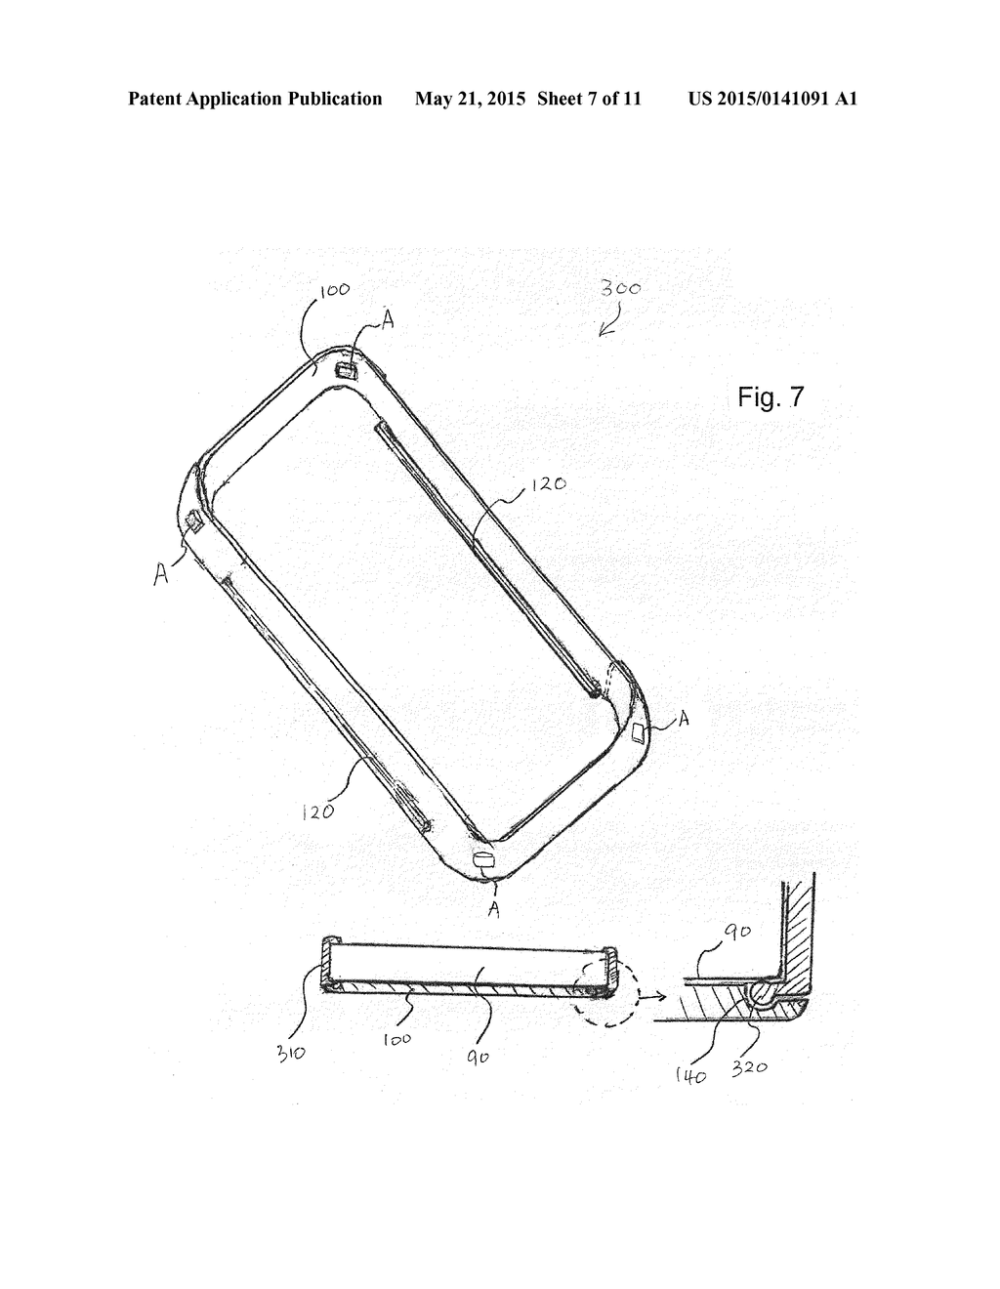 medium resolution of detachable front flip cover for cell phone case diagram schematic and image 08